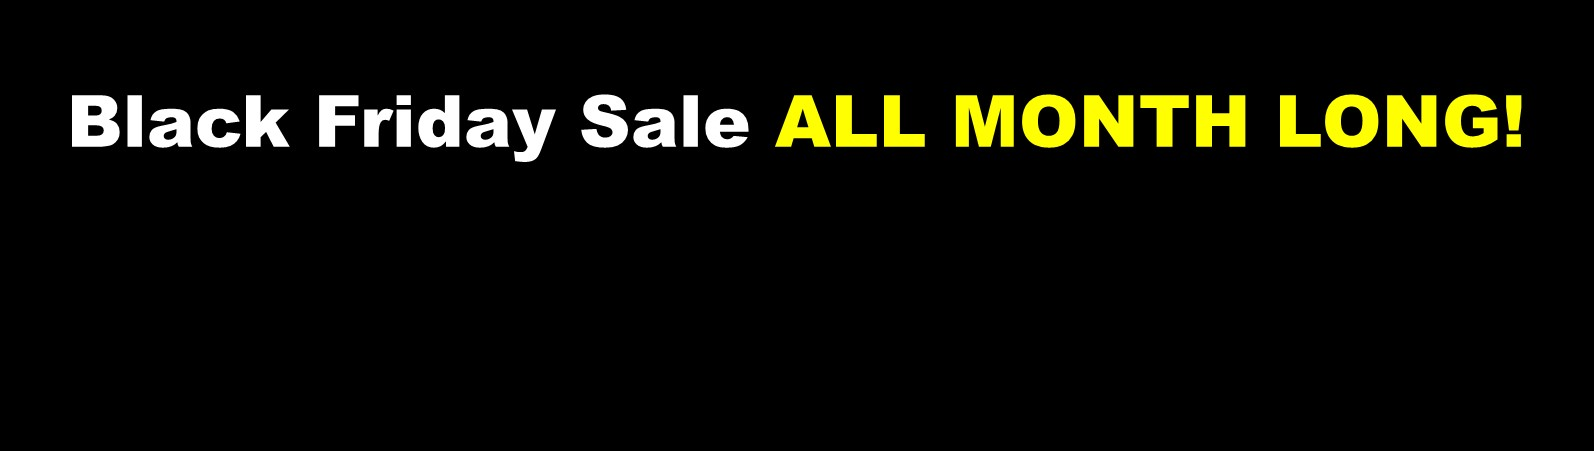 Black Friday Sale ALL MONTH LONG!